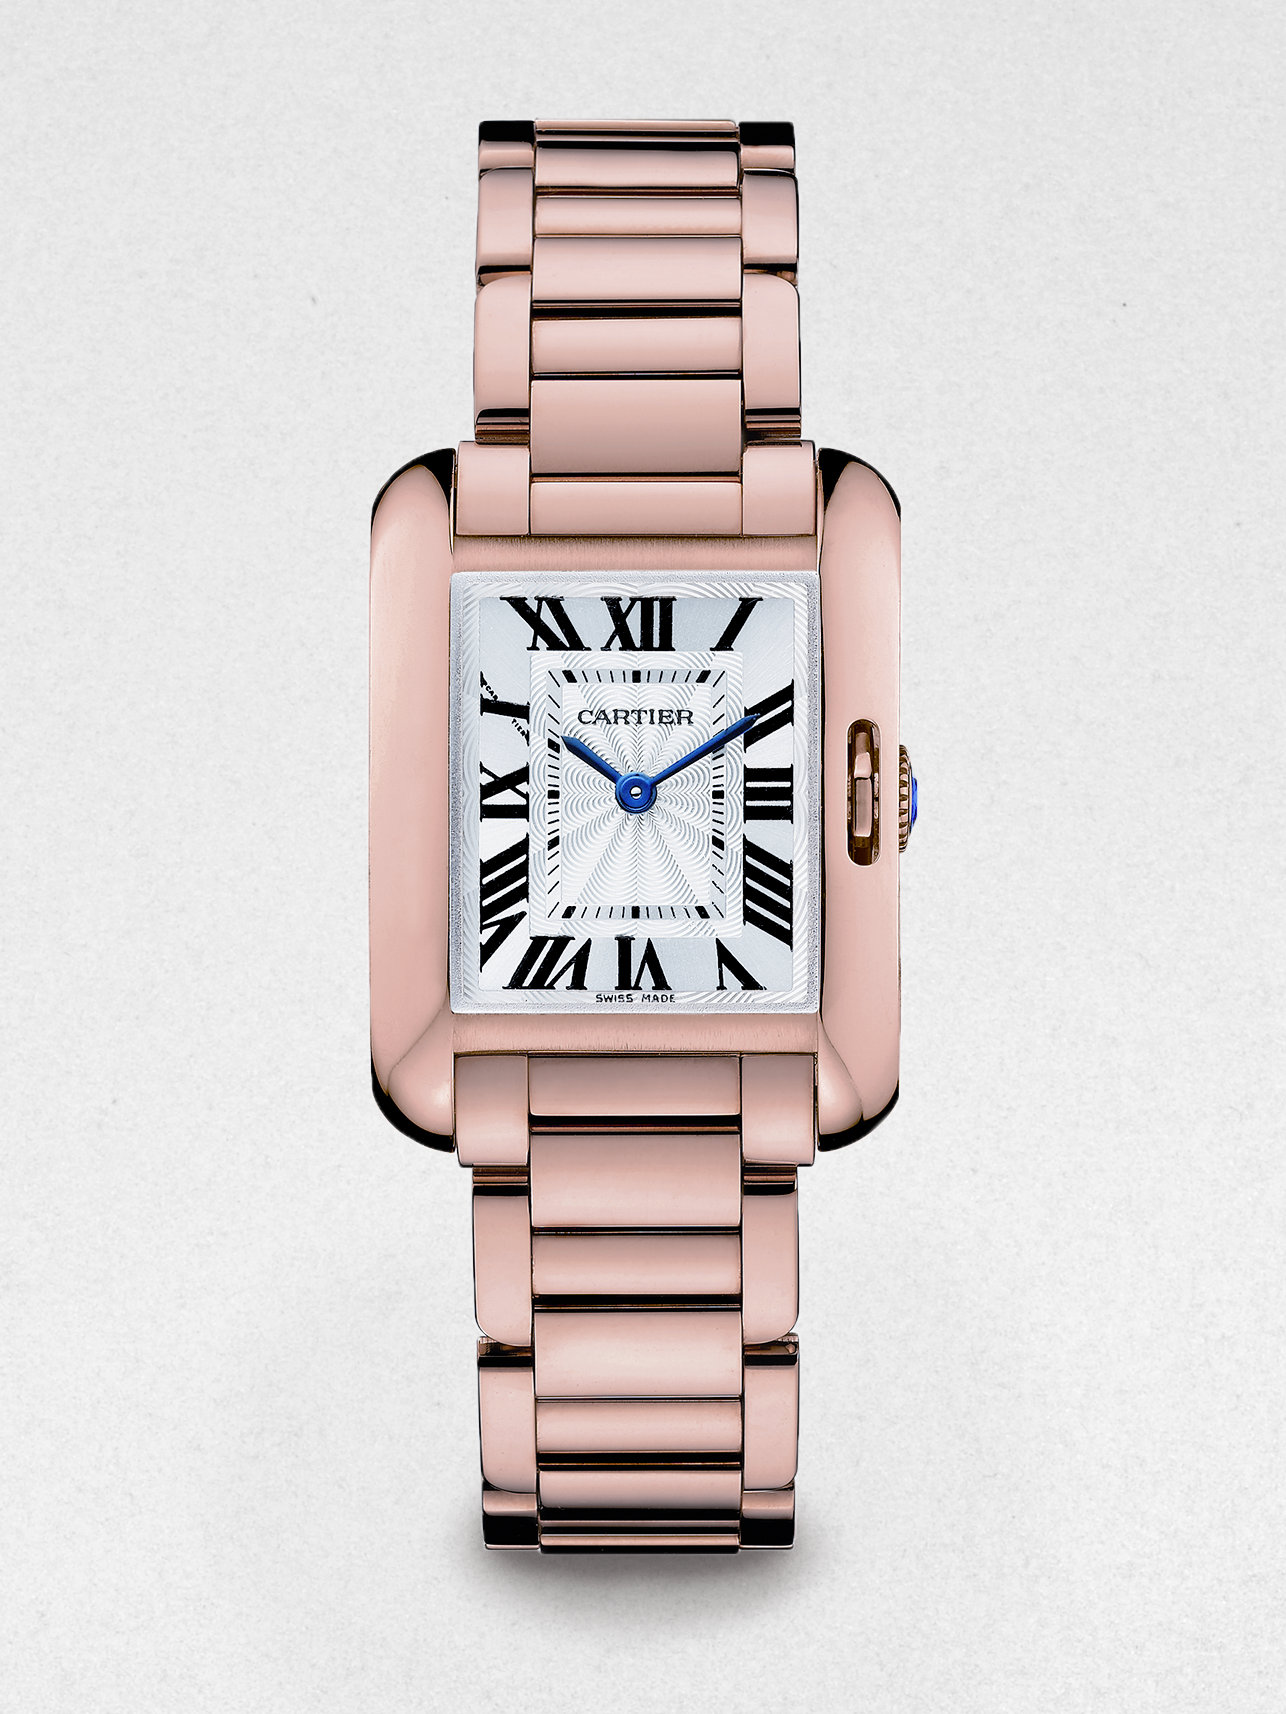 5a0f3fb81c7e Lyst - Cartier Tank Anglaise 18k Pink Gold Watch in Metallic